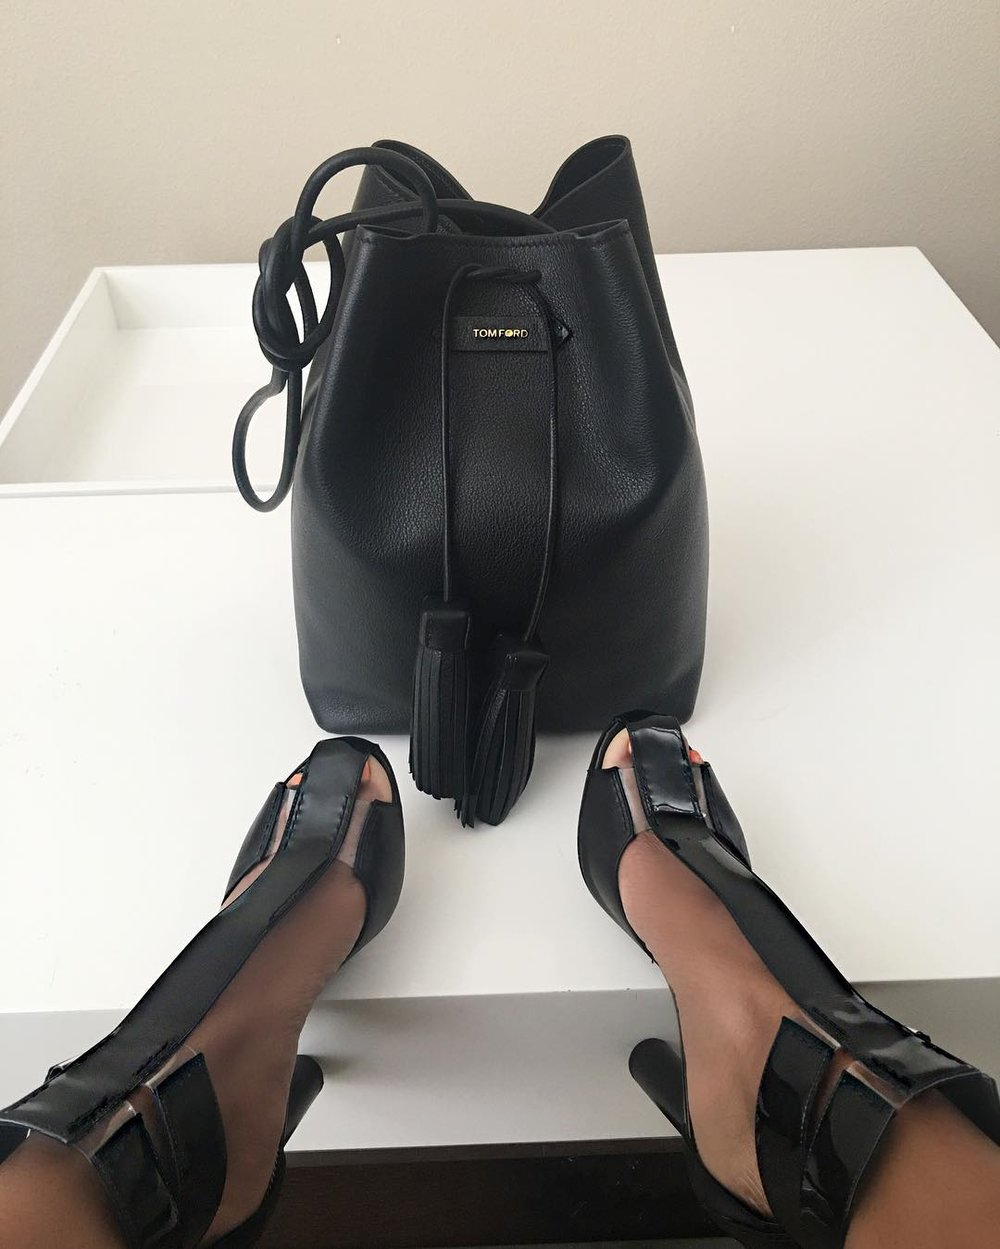 Tom Ford bag and Heels